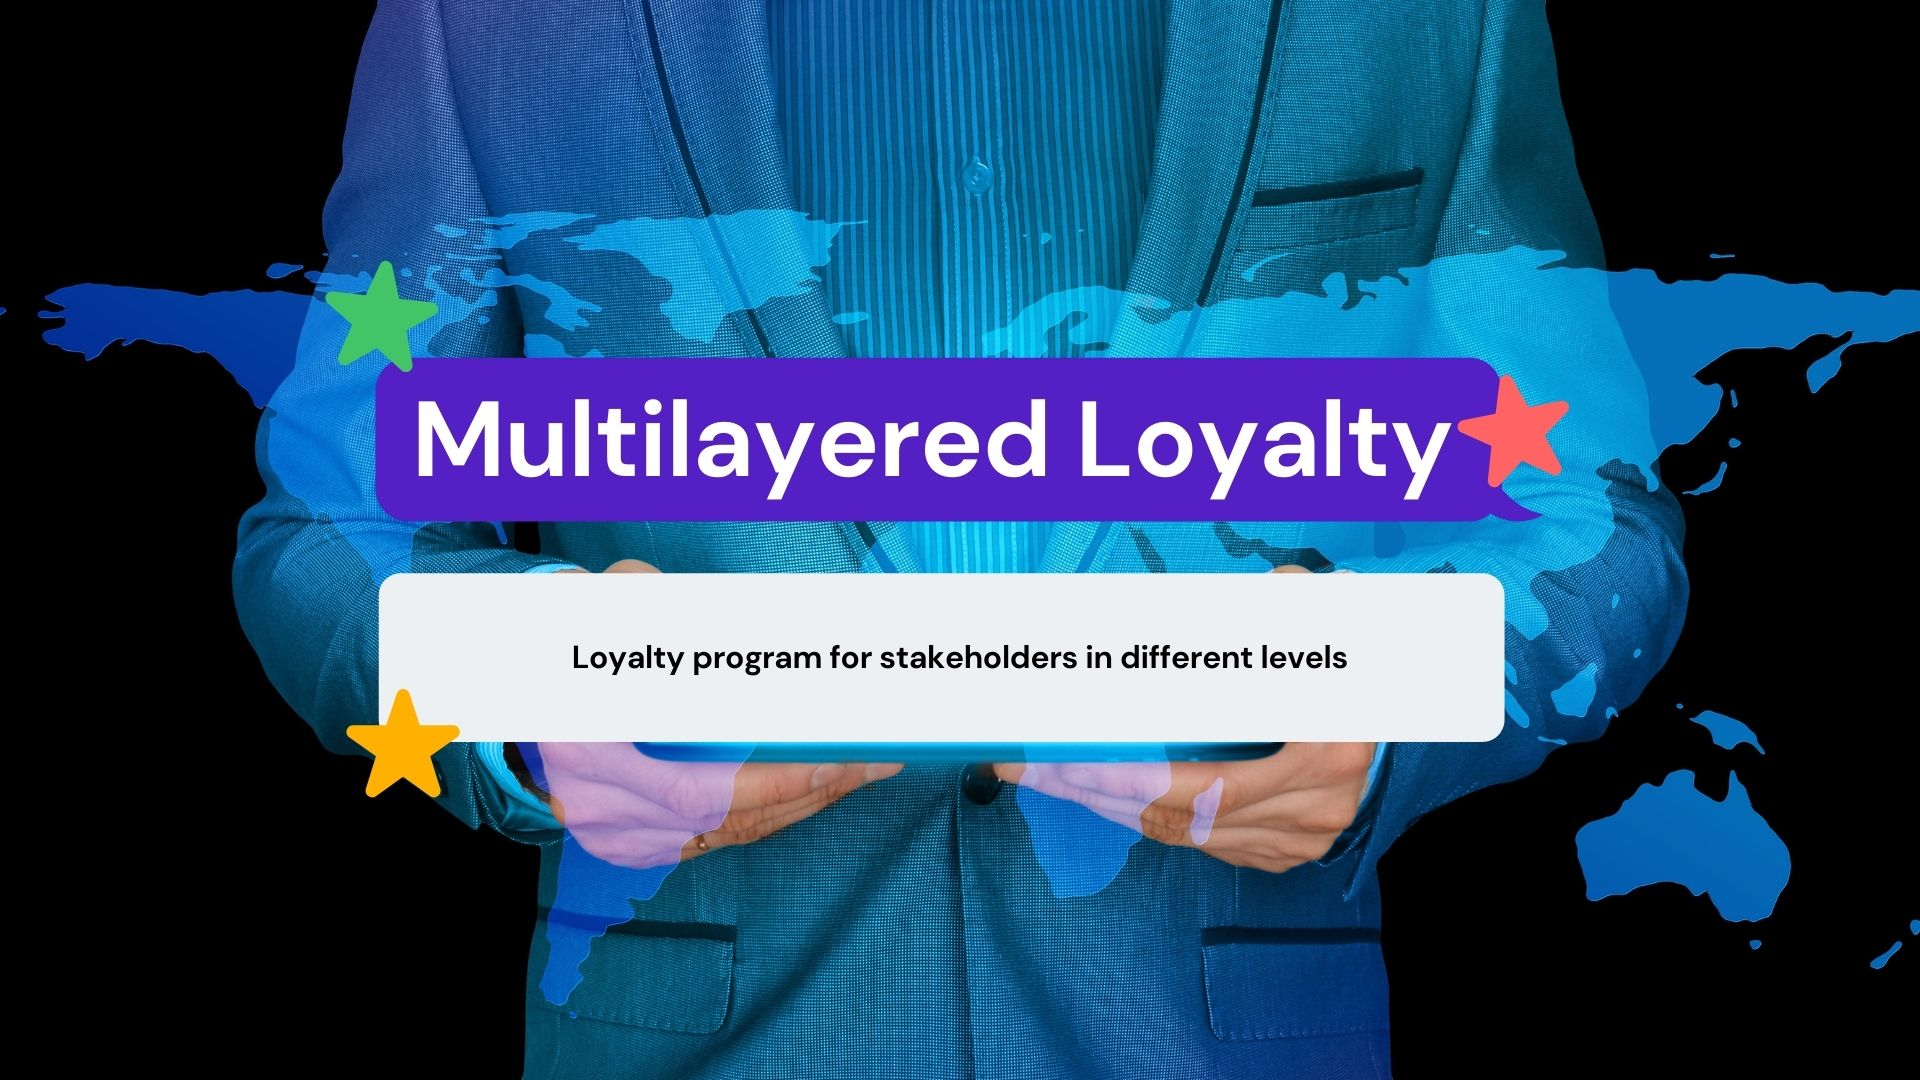 Multilayered Loyalty Programs by CXBOX